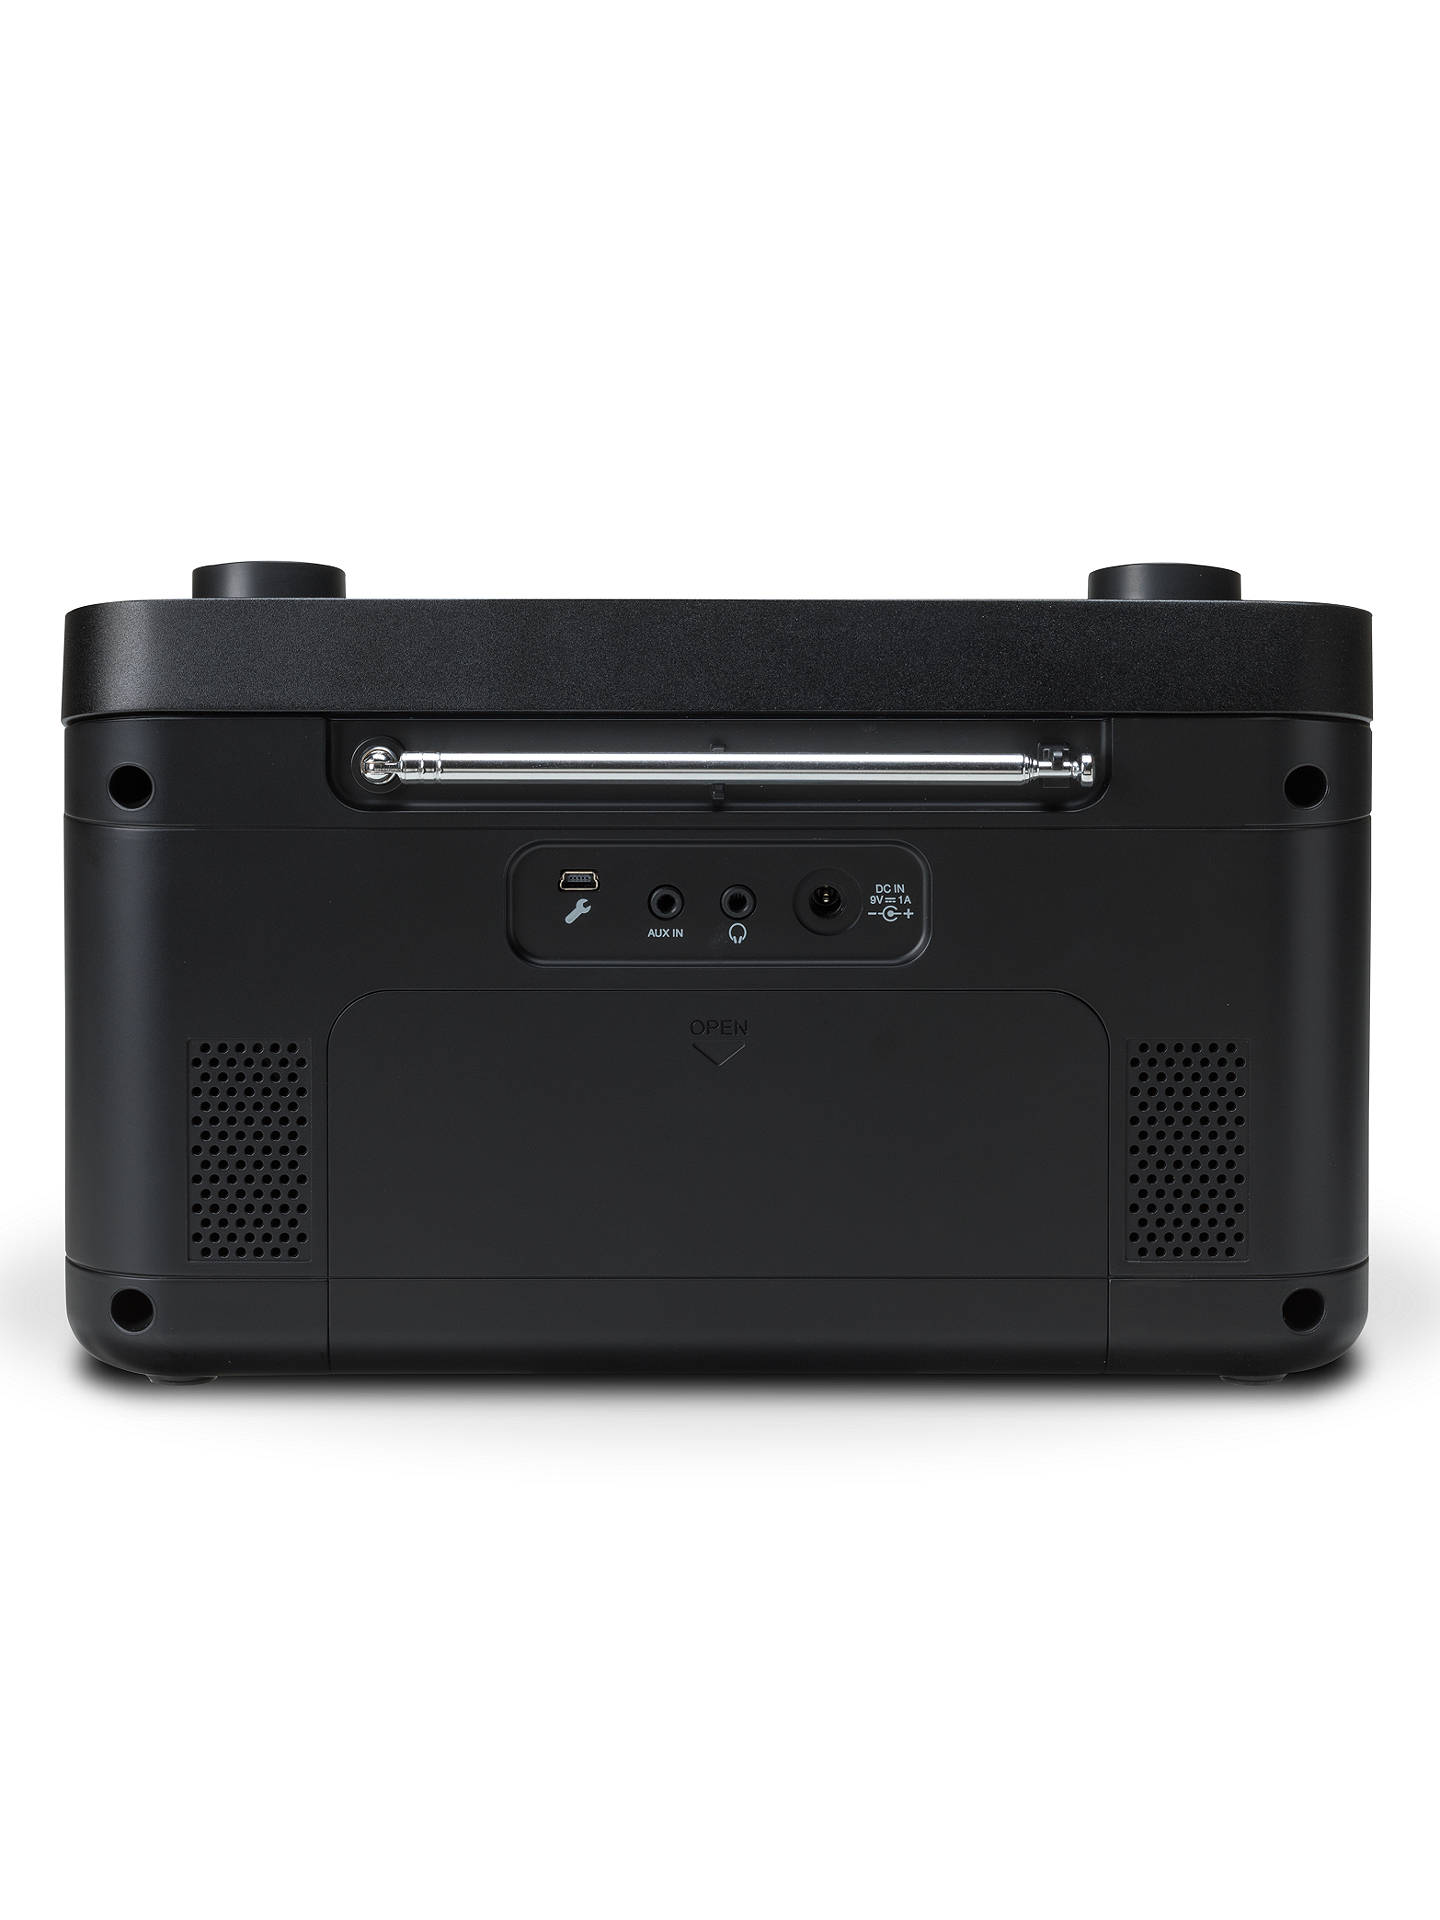 BuyROBERTS Blutune 5 DAB+/DAB/FM Bluetooth Radio, Black Online at johnlewis.com